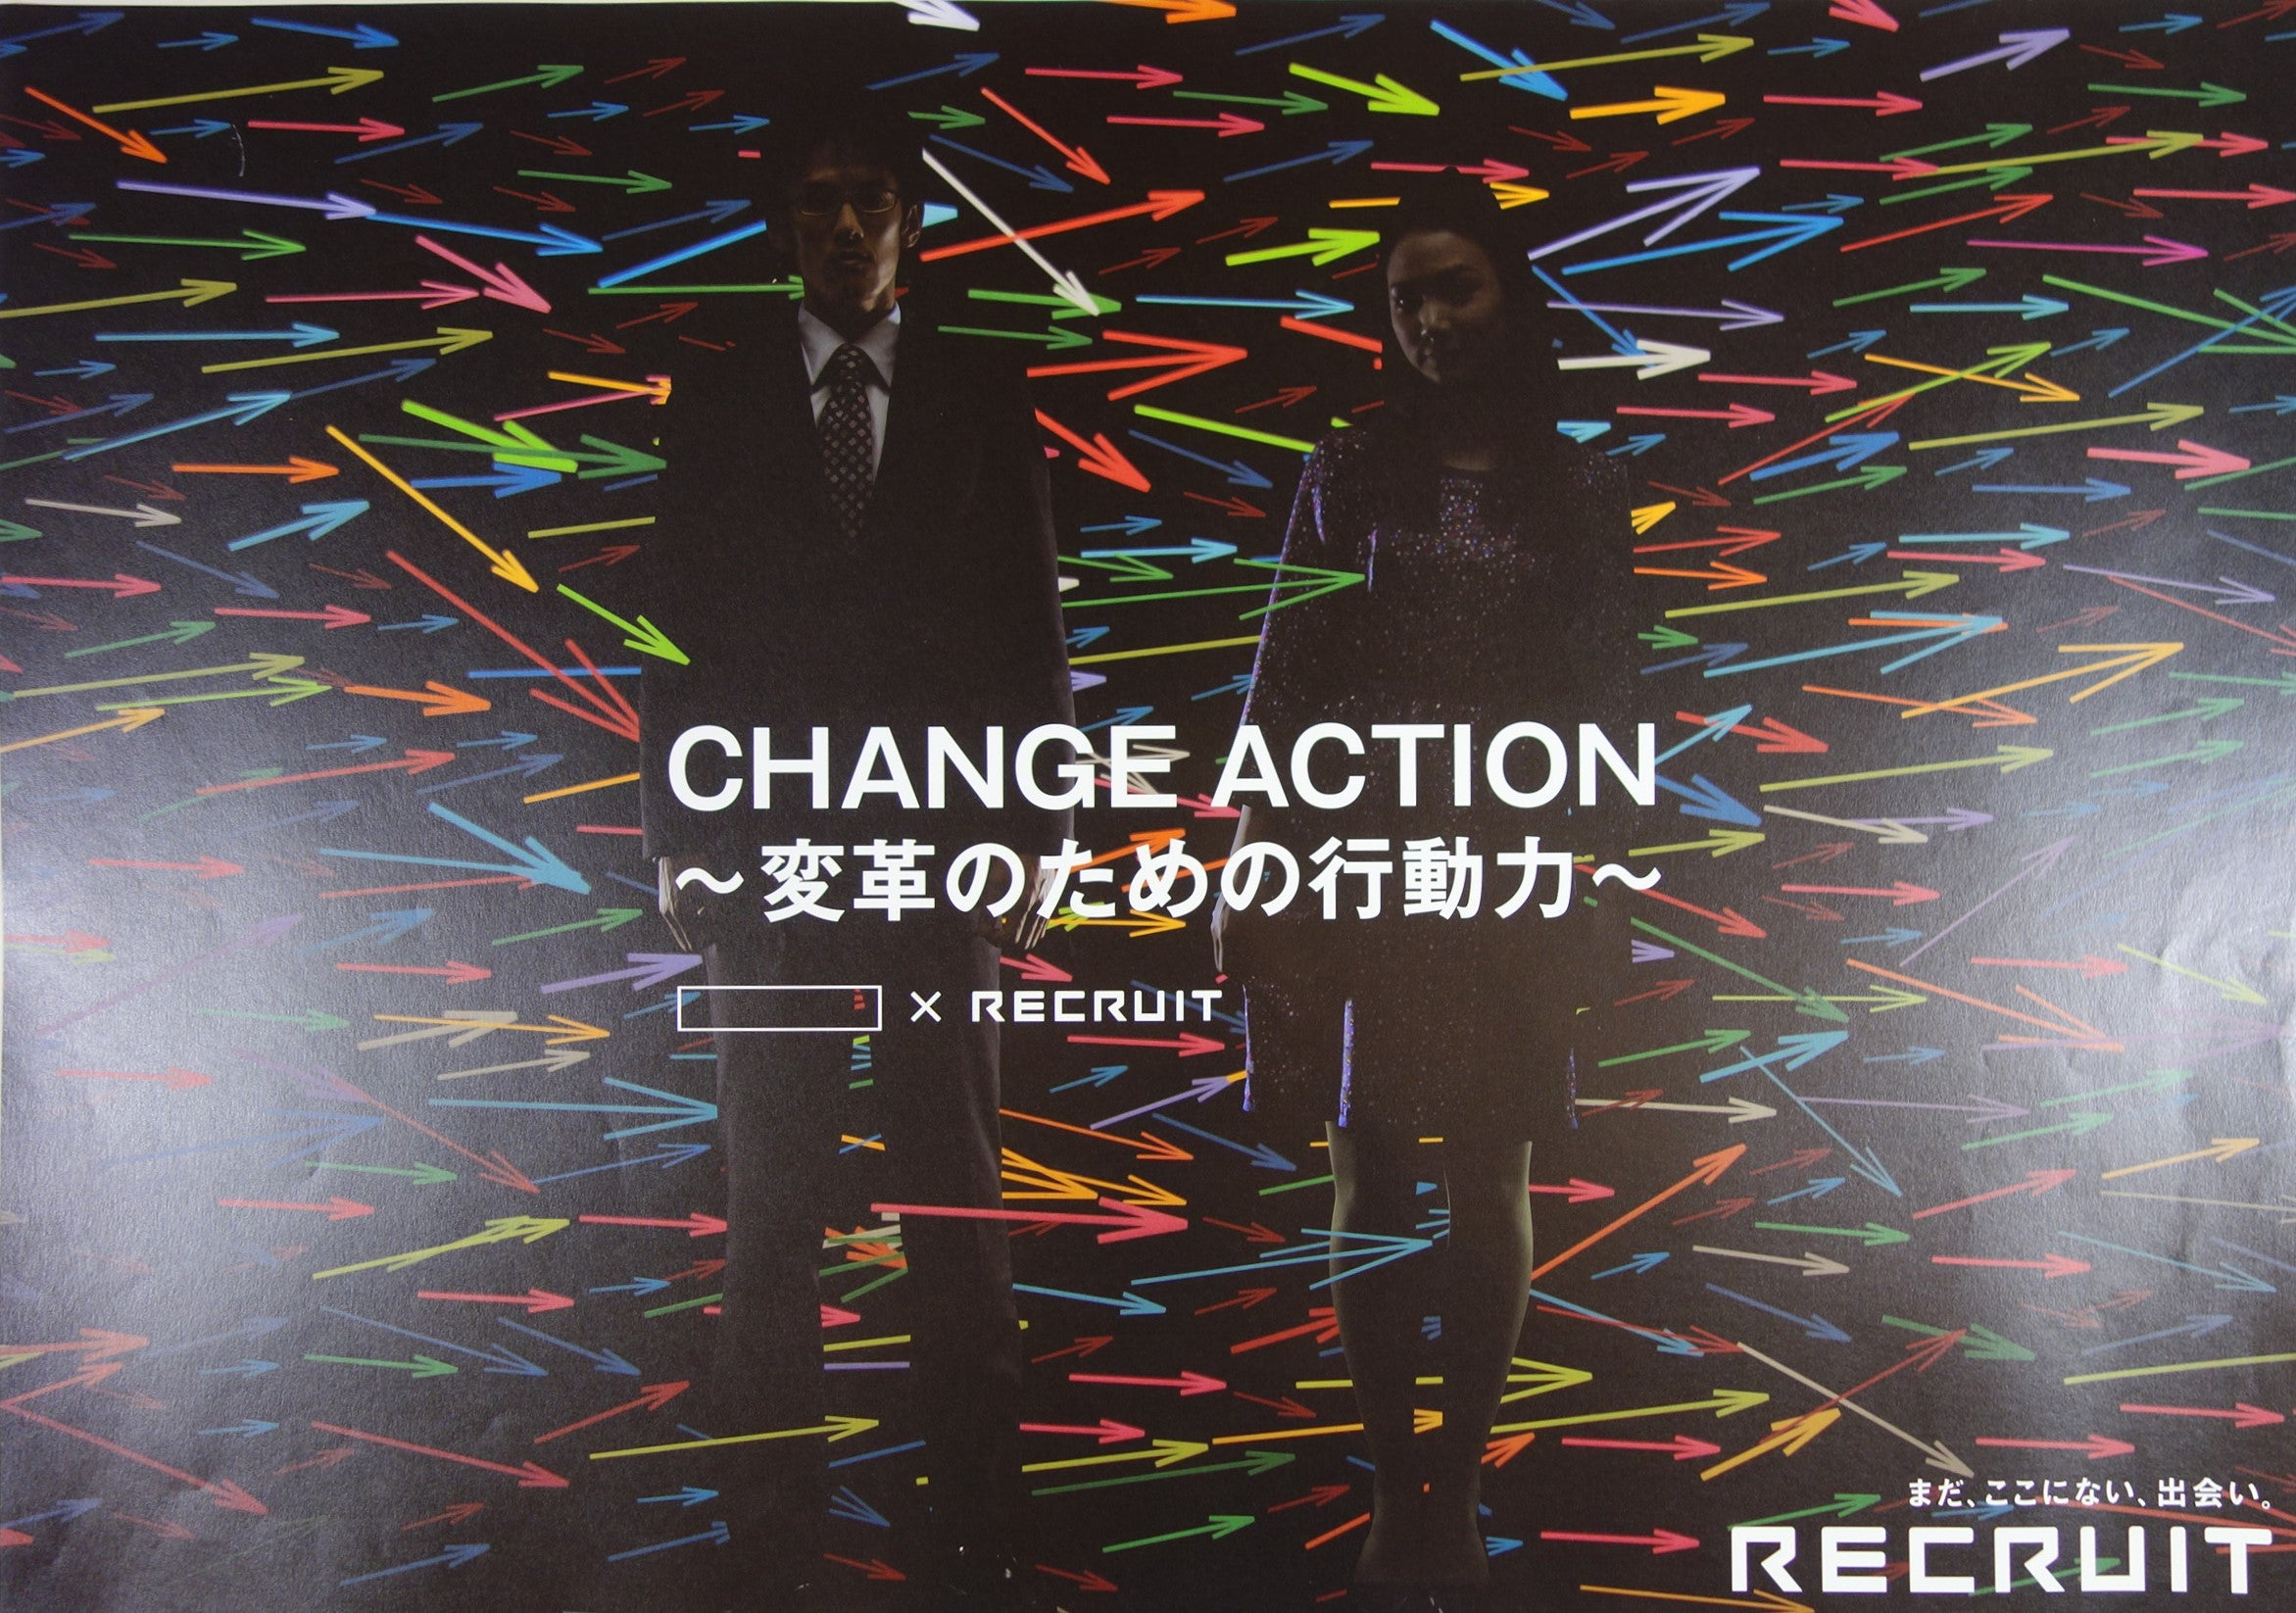 Change Action